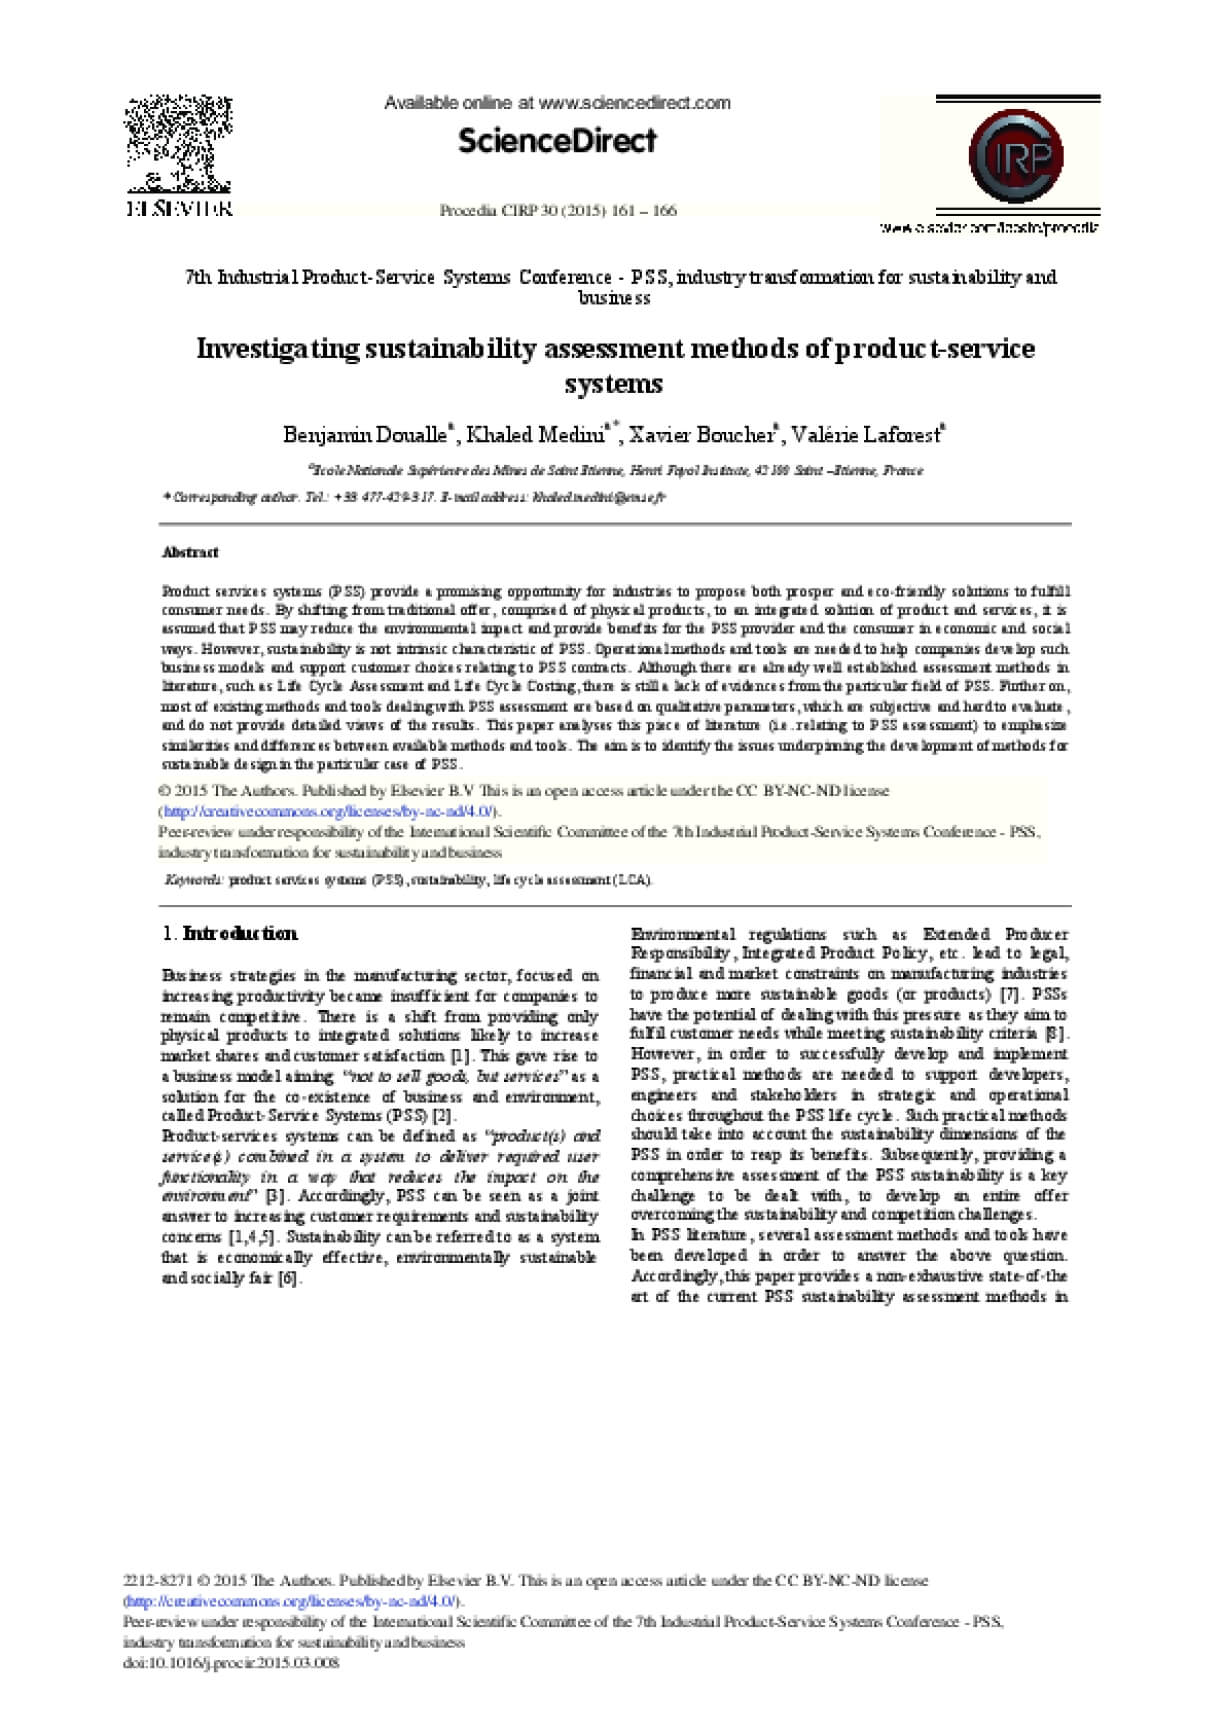 Investigating Sustainability Assessment Methods of Product-Service Systems